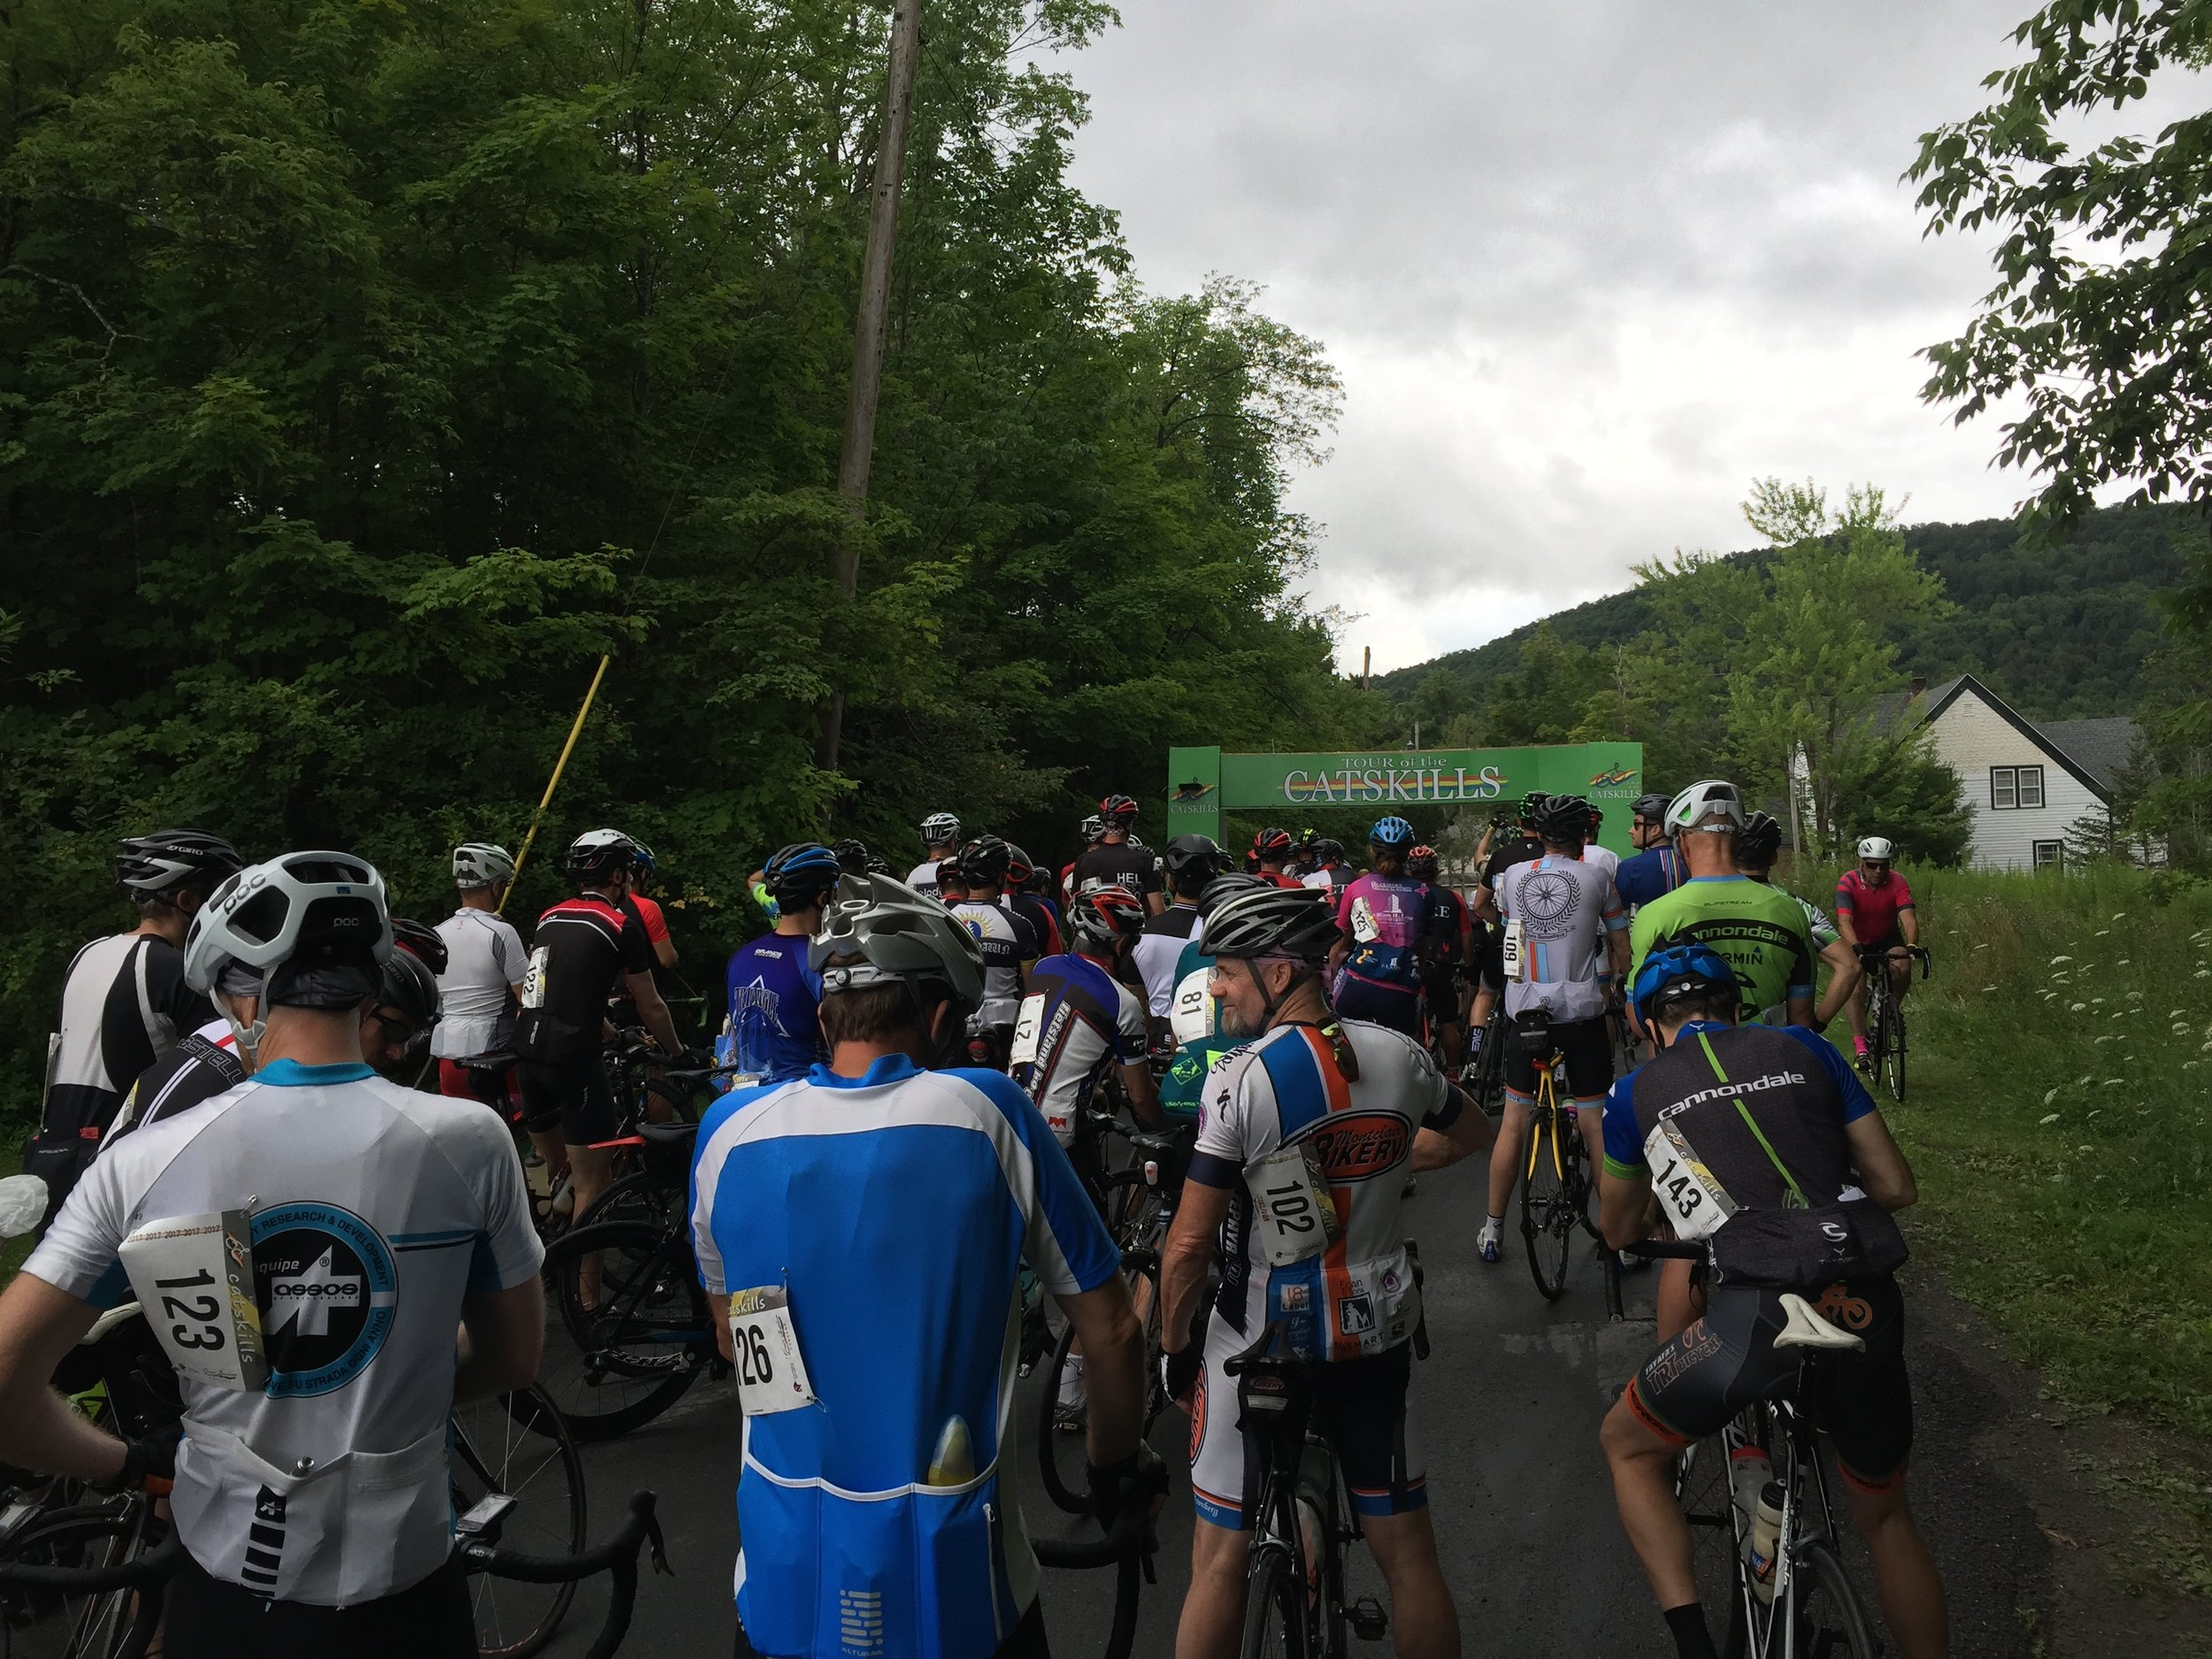 Riders lined up for the start of the 80-mile Tour of the Catskills on Church Street.